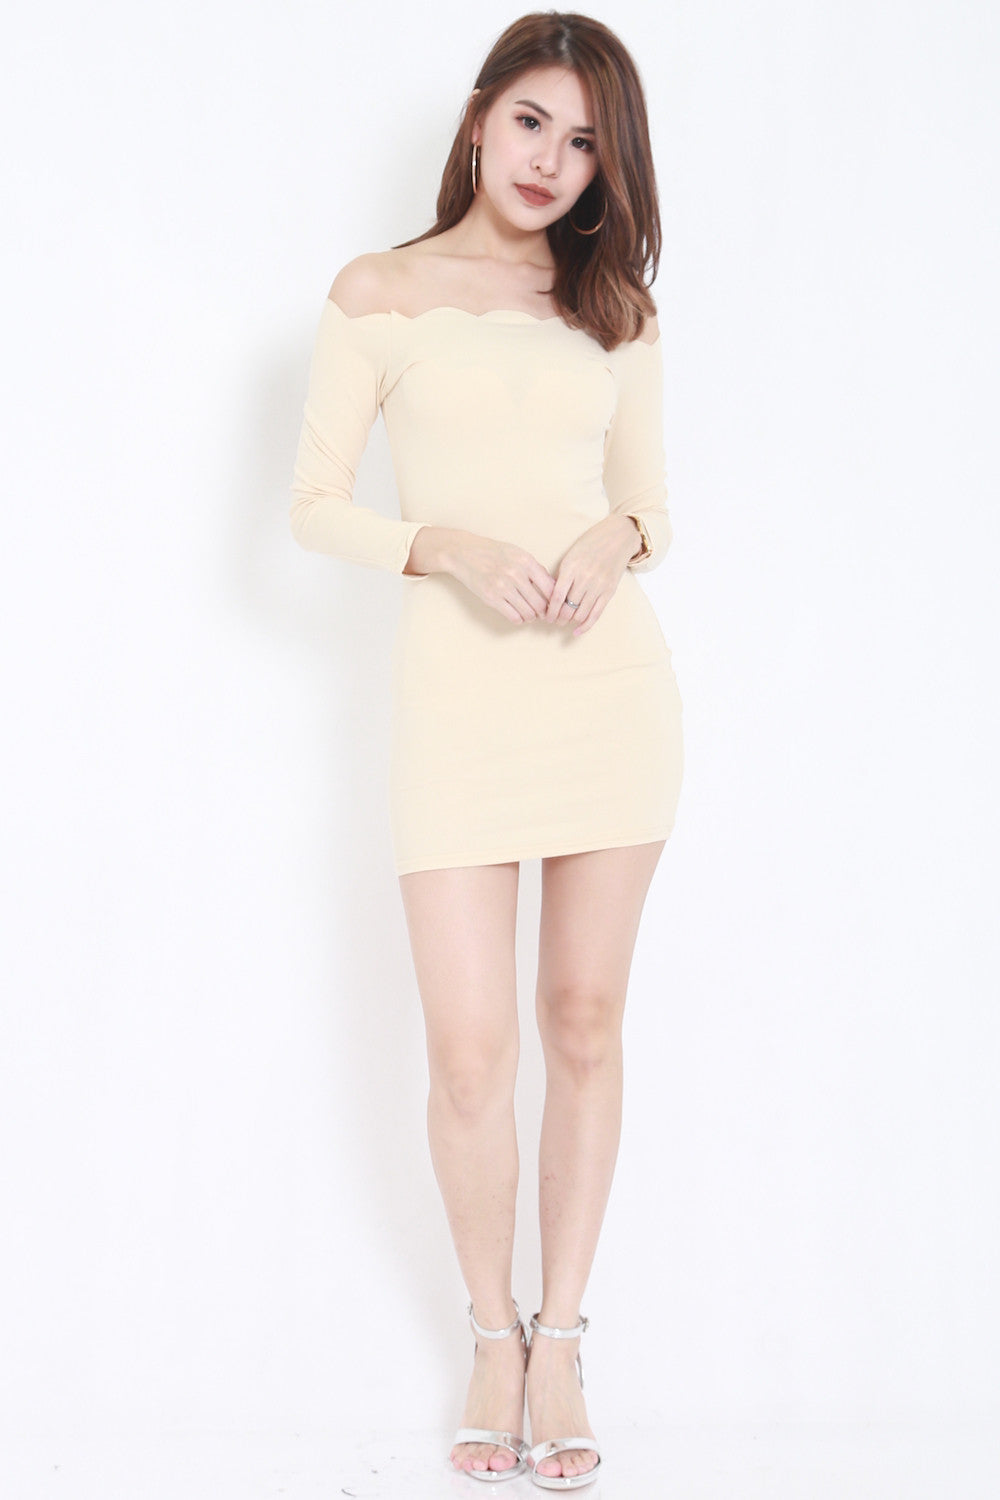 Ls- nude :1 7 LS Scallop Dress (Nude) - - 2